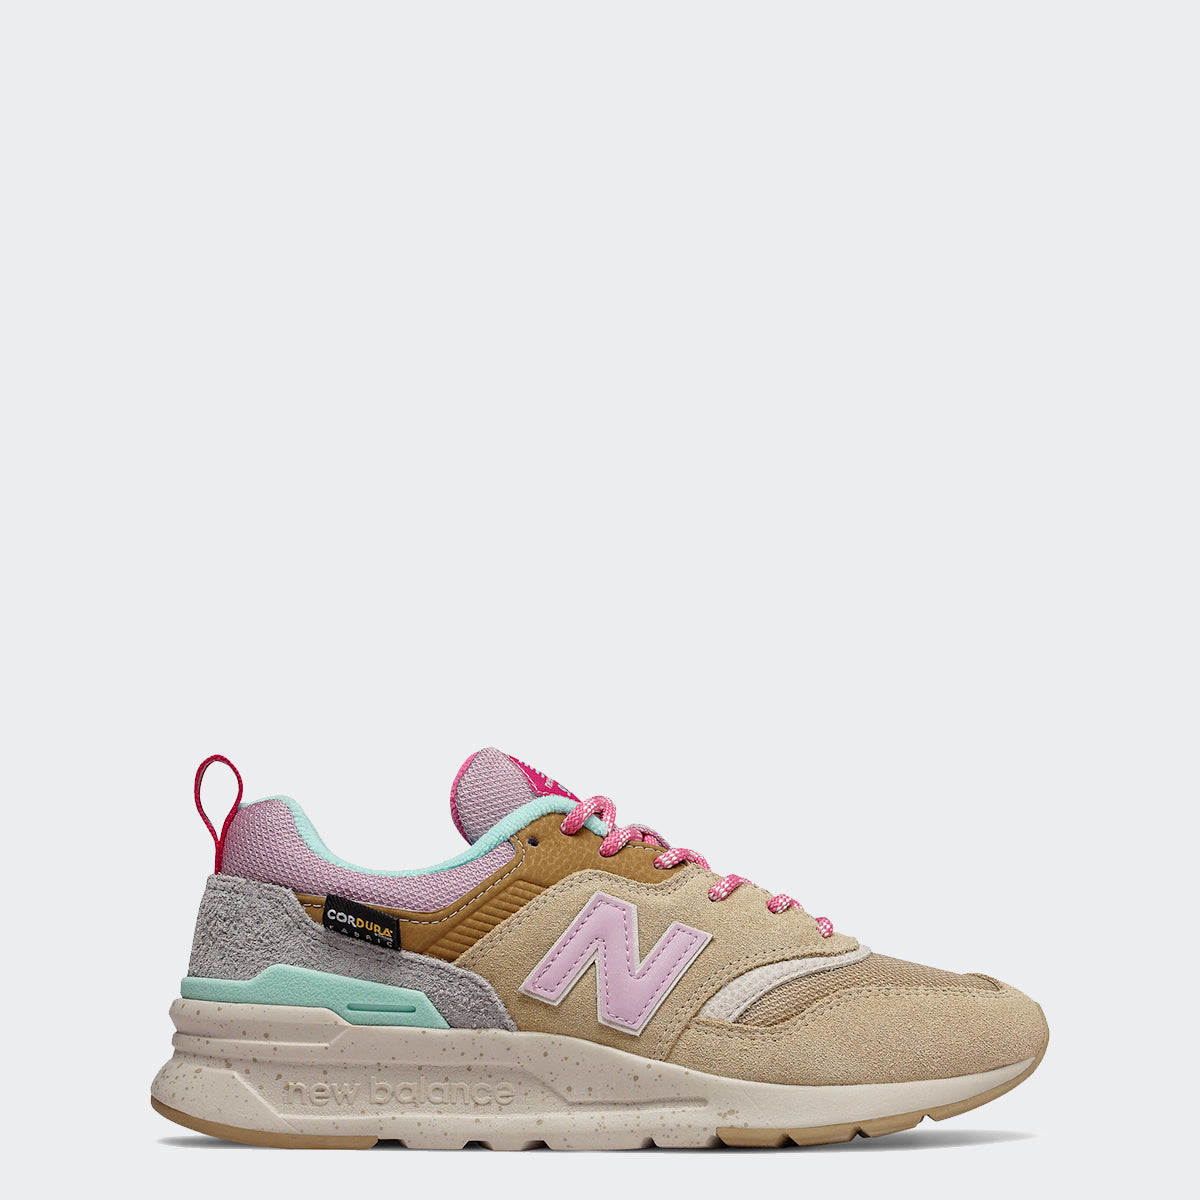 New Balance 997H Shoes Incense Pink CW997HOA | Chicago City ...